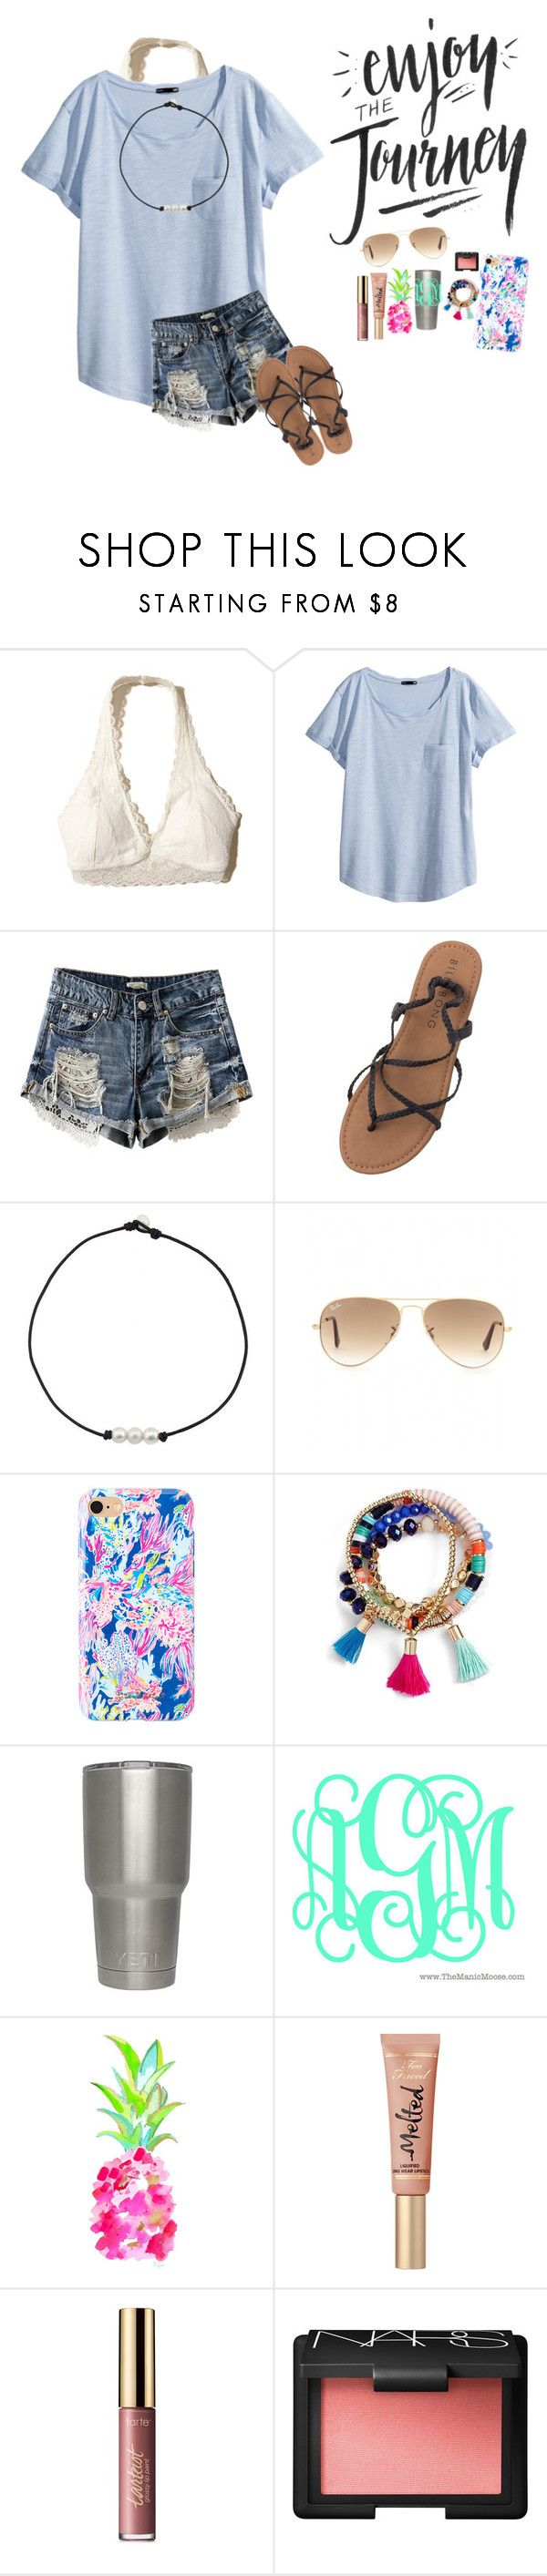 Enjoy The Journey!!! by mckenna1 ❤ liked on Polyvore featuring Hollister Co., HM, Billabong, Ray-Ban, Lilly Pulitzer, BaubleBar, WALL, tarte and NARS Cosmetics